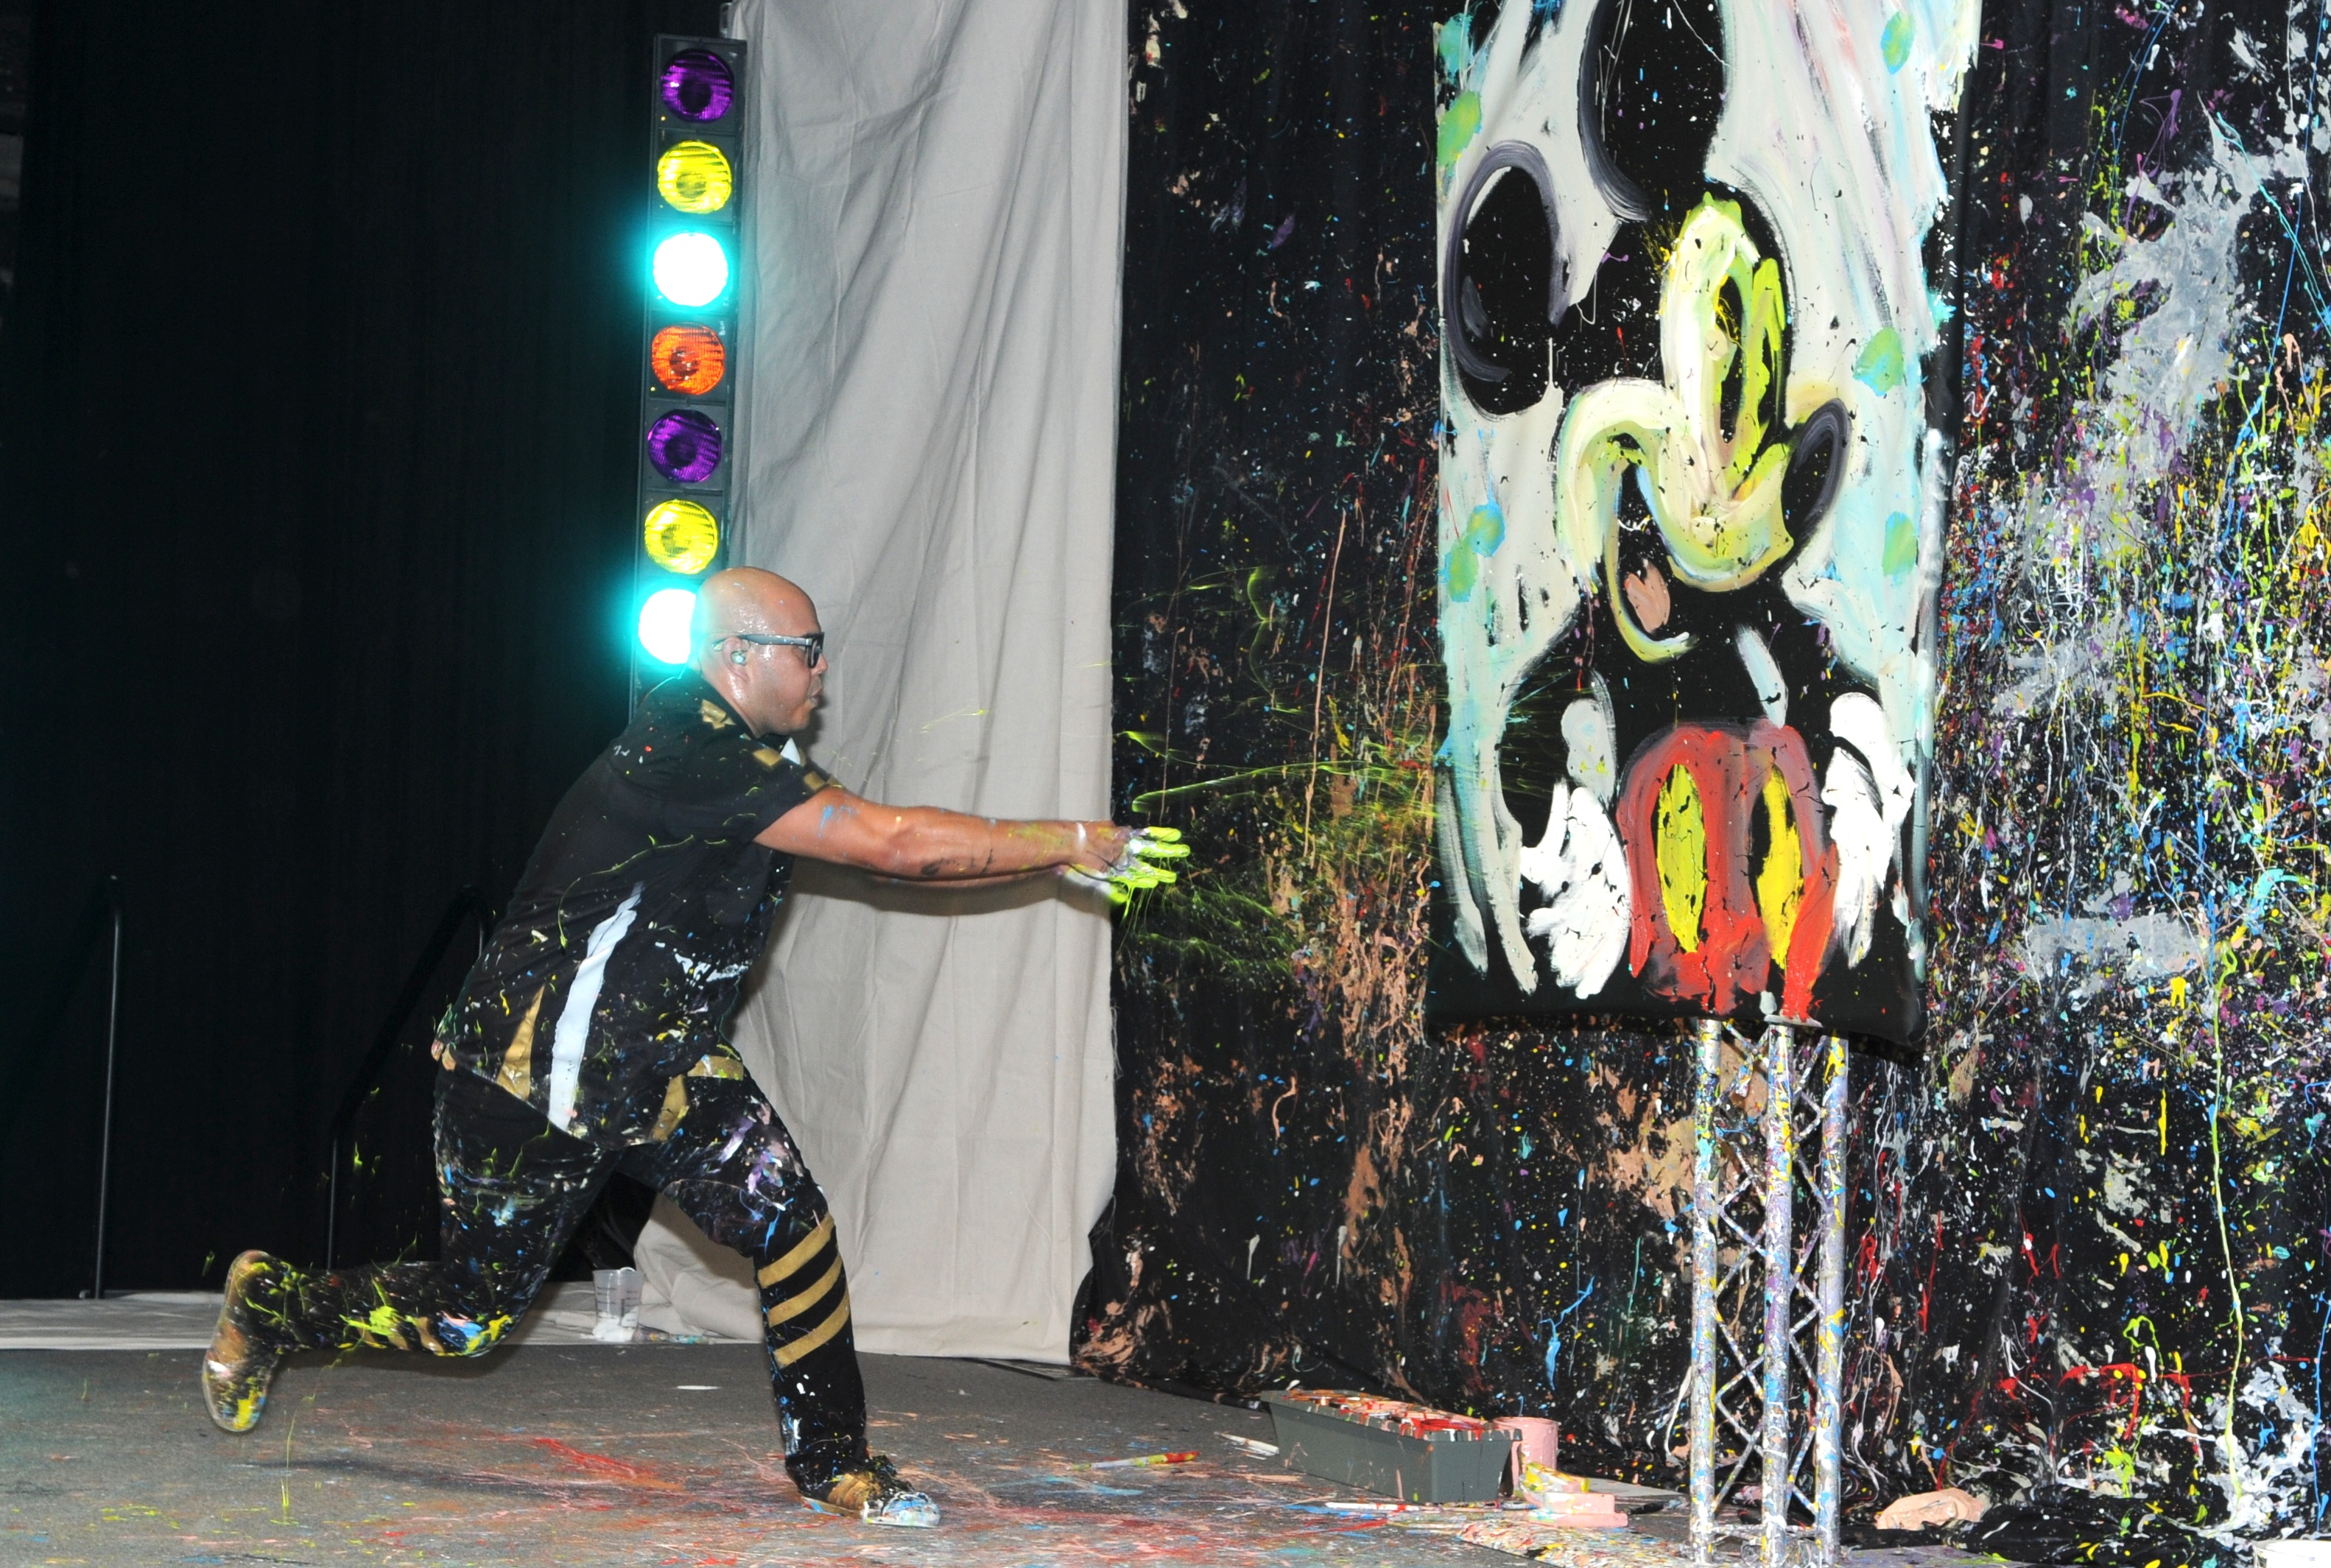 Mickey Mouse magically comes to life through David Garibaldi's performance at the Imagination Ball - photo by manny hernandez